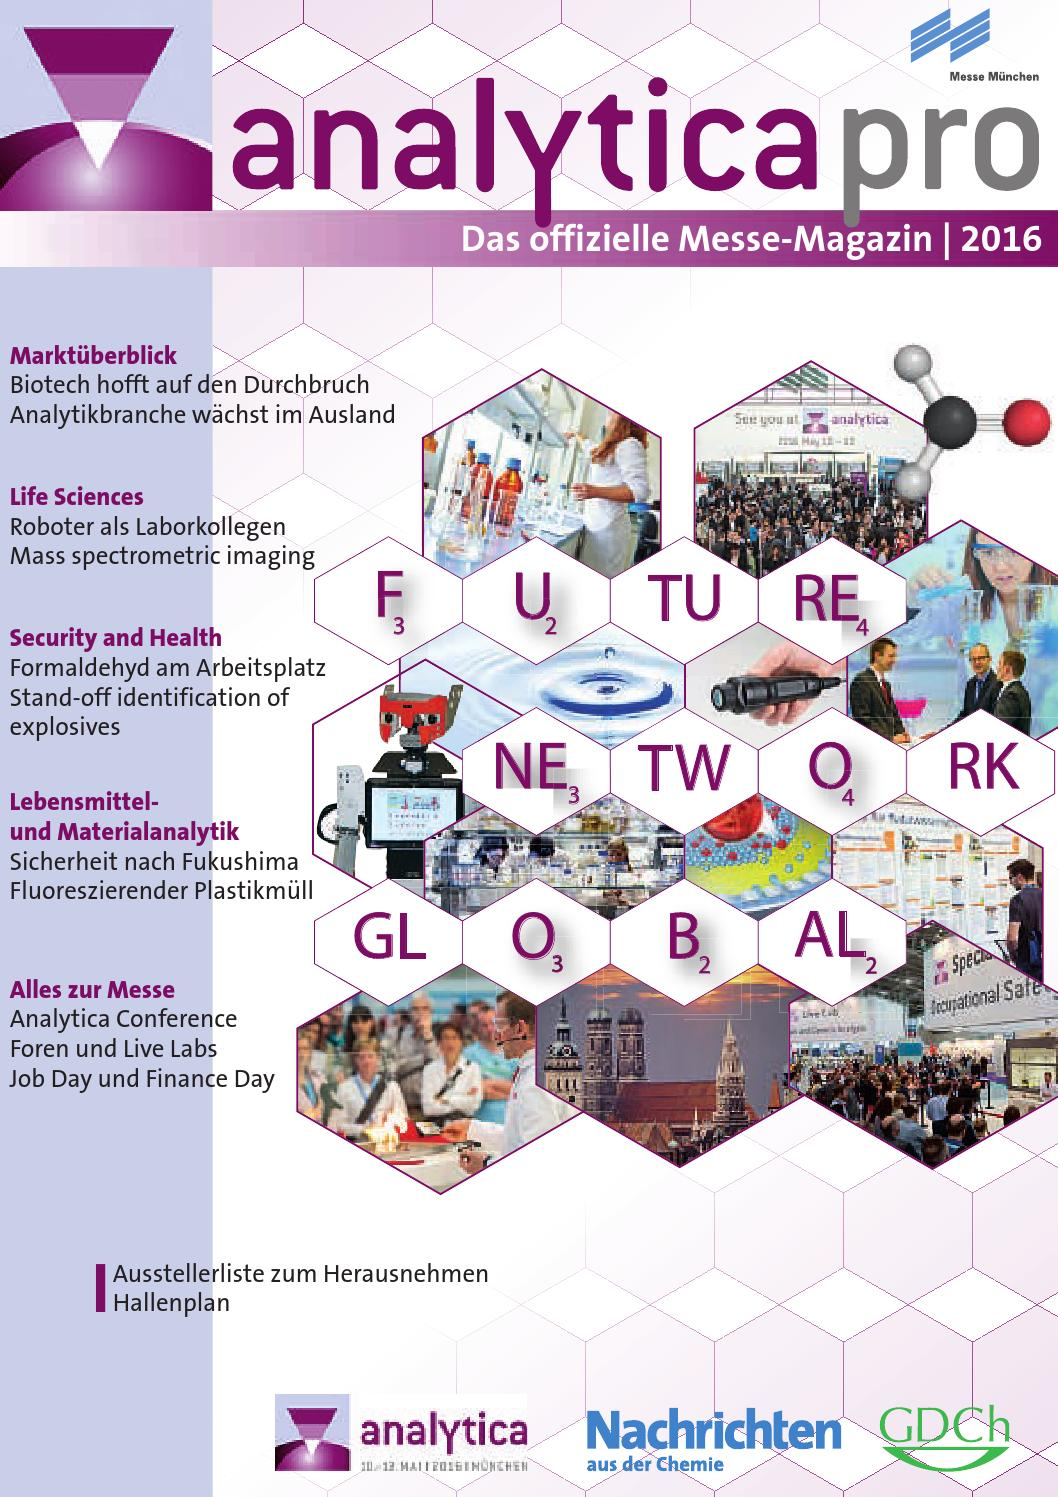 analytica_16_Messe_Magazin_D_E by Messe Muenchen - issuu